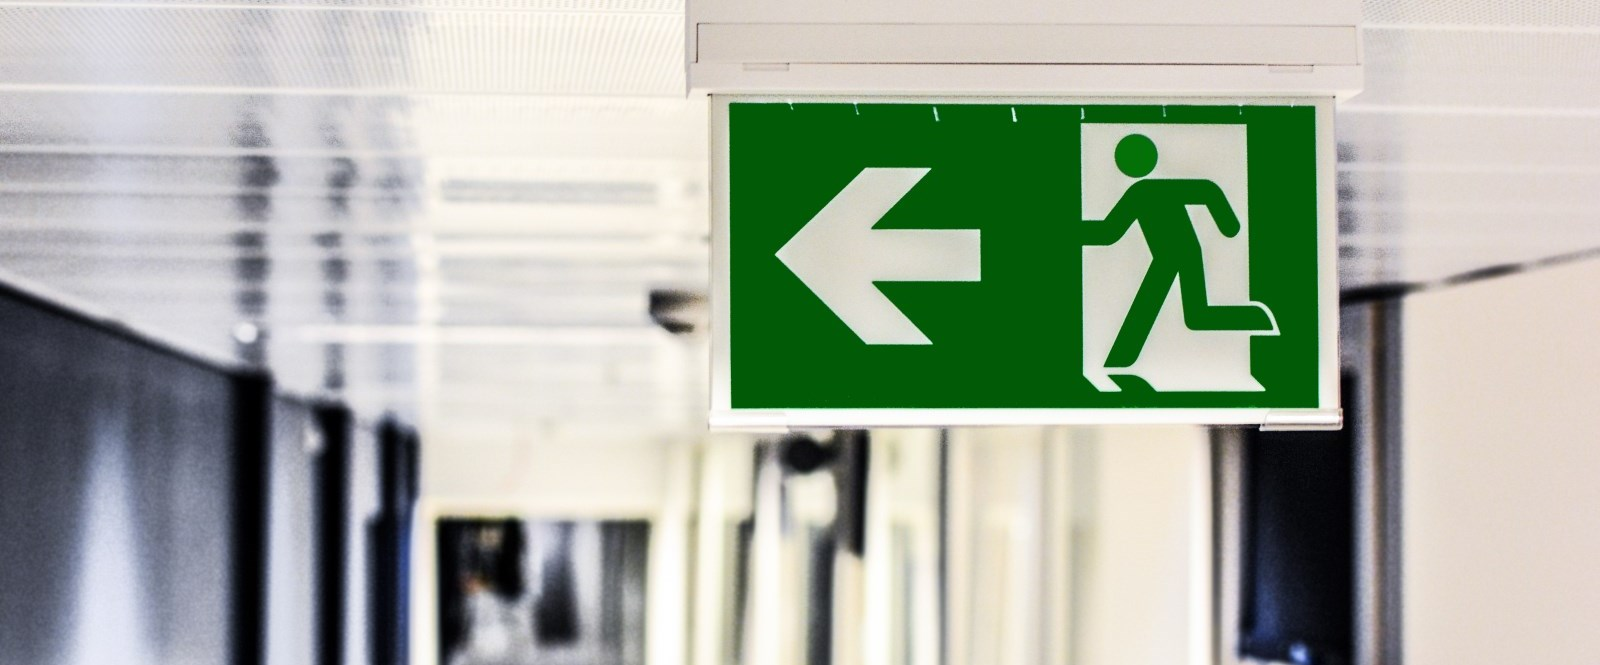 Green escape sign of person running away Cornwall